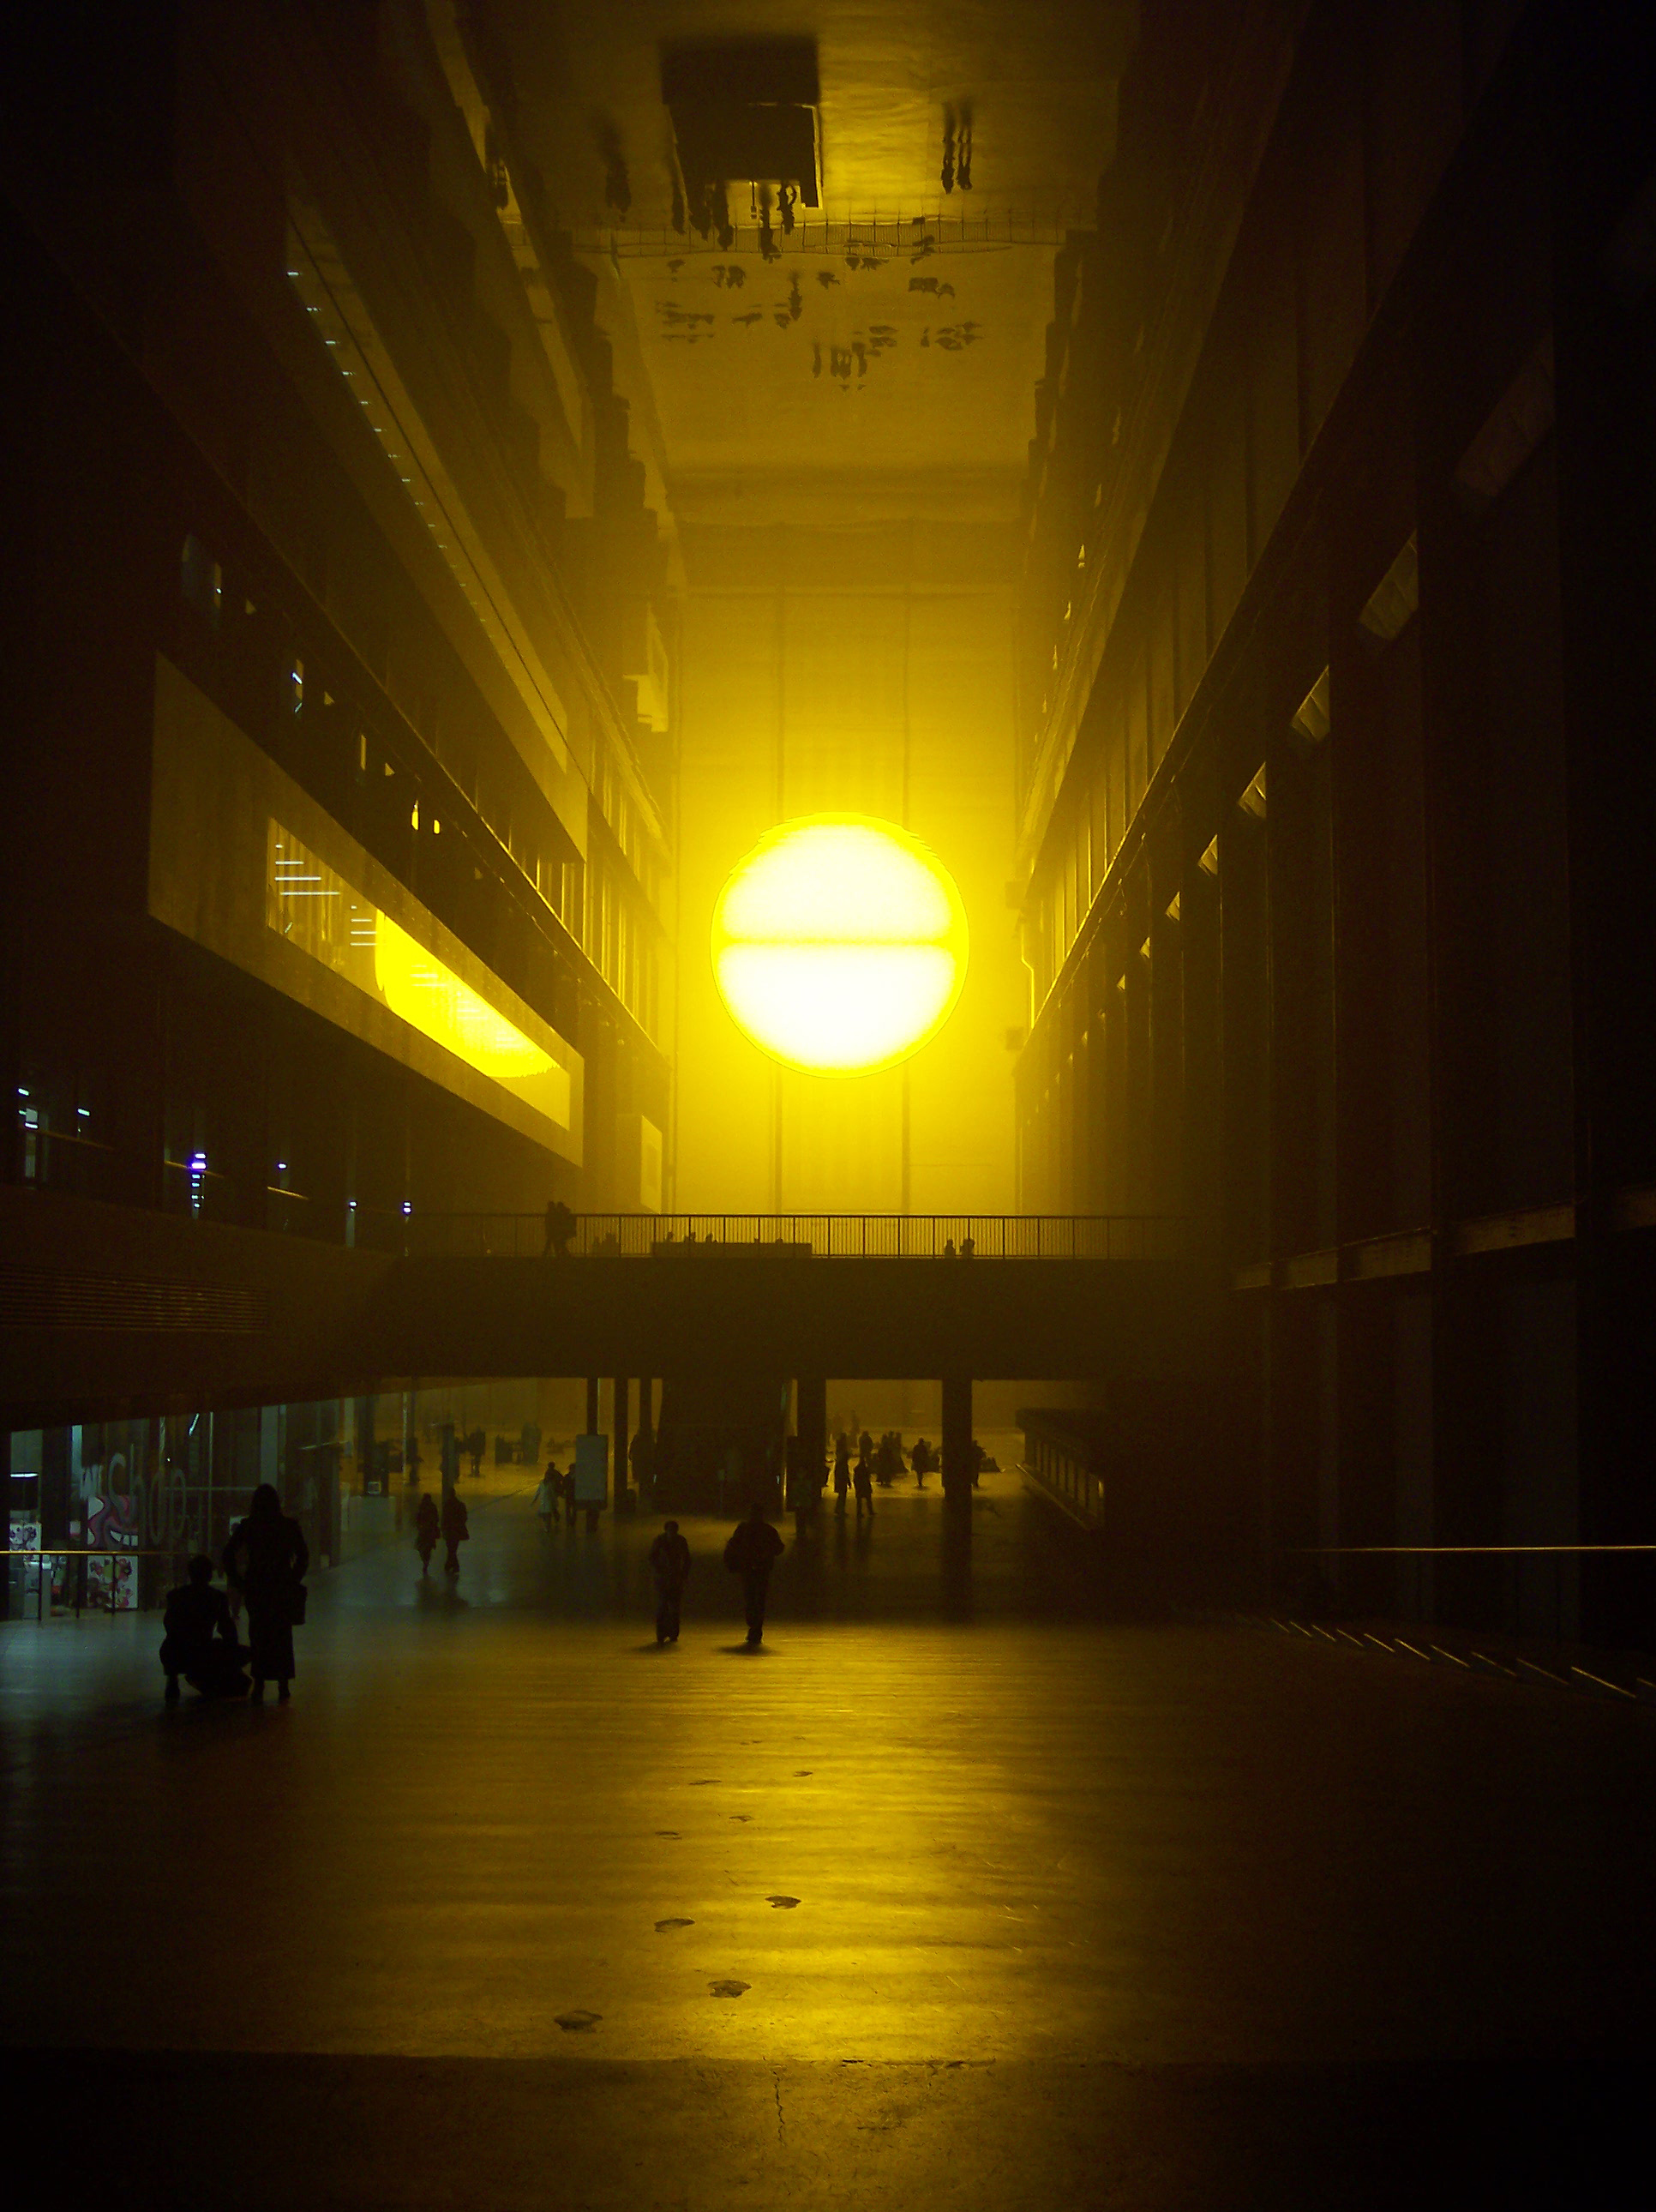 2004_01-08_Olafur-Eliasson_The-Weather-Project-[Tate-Modern]_4_Photograph_James-Bulley.jpg